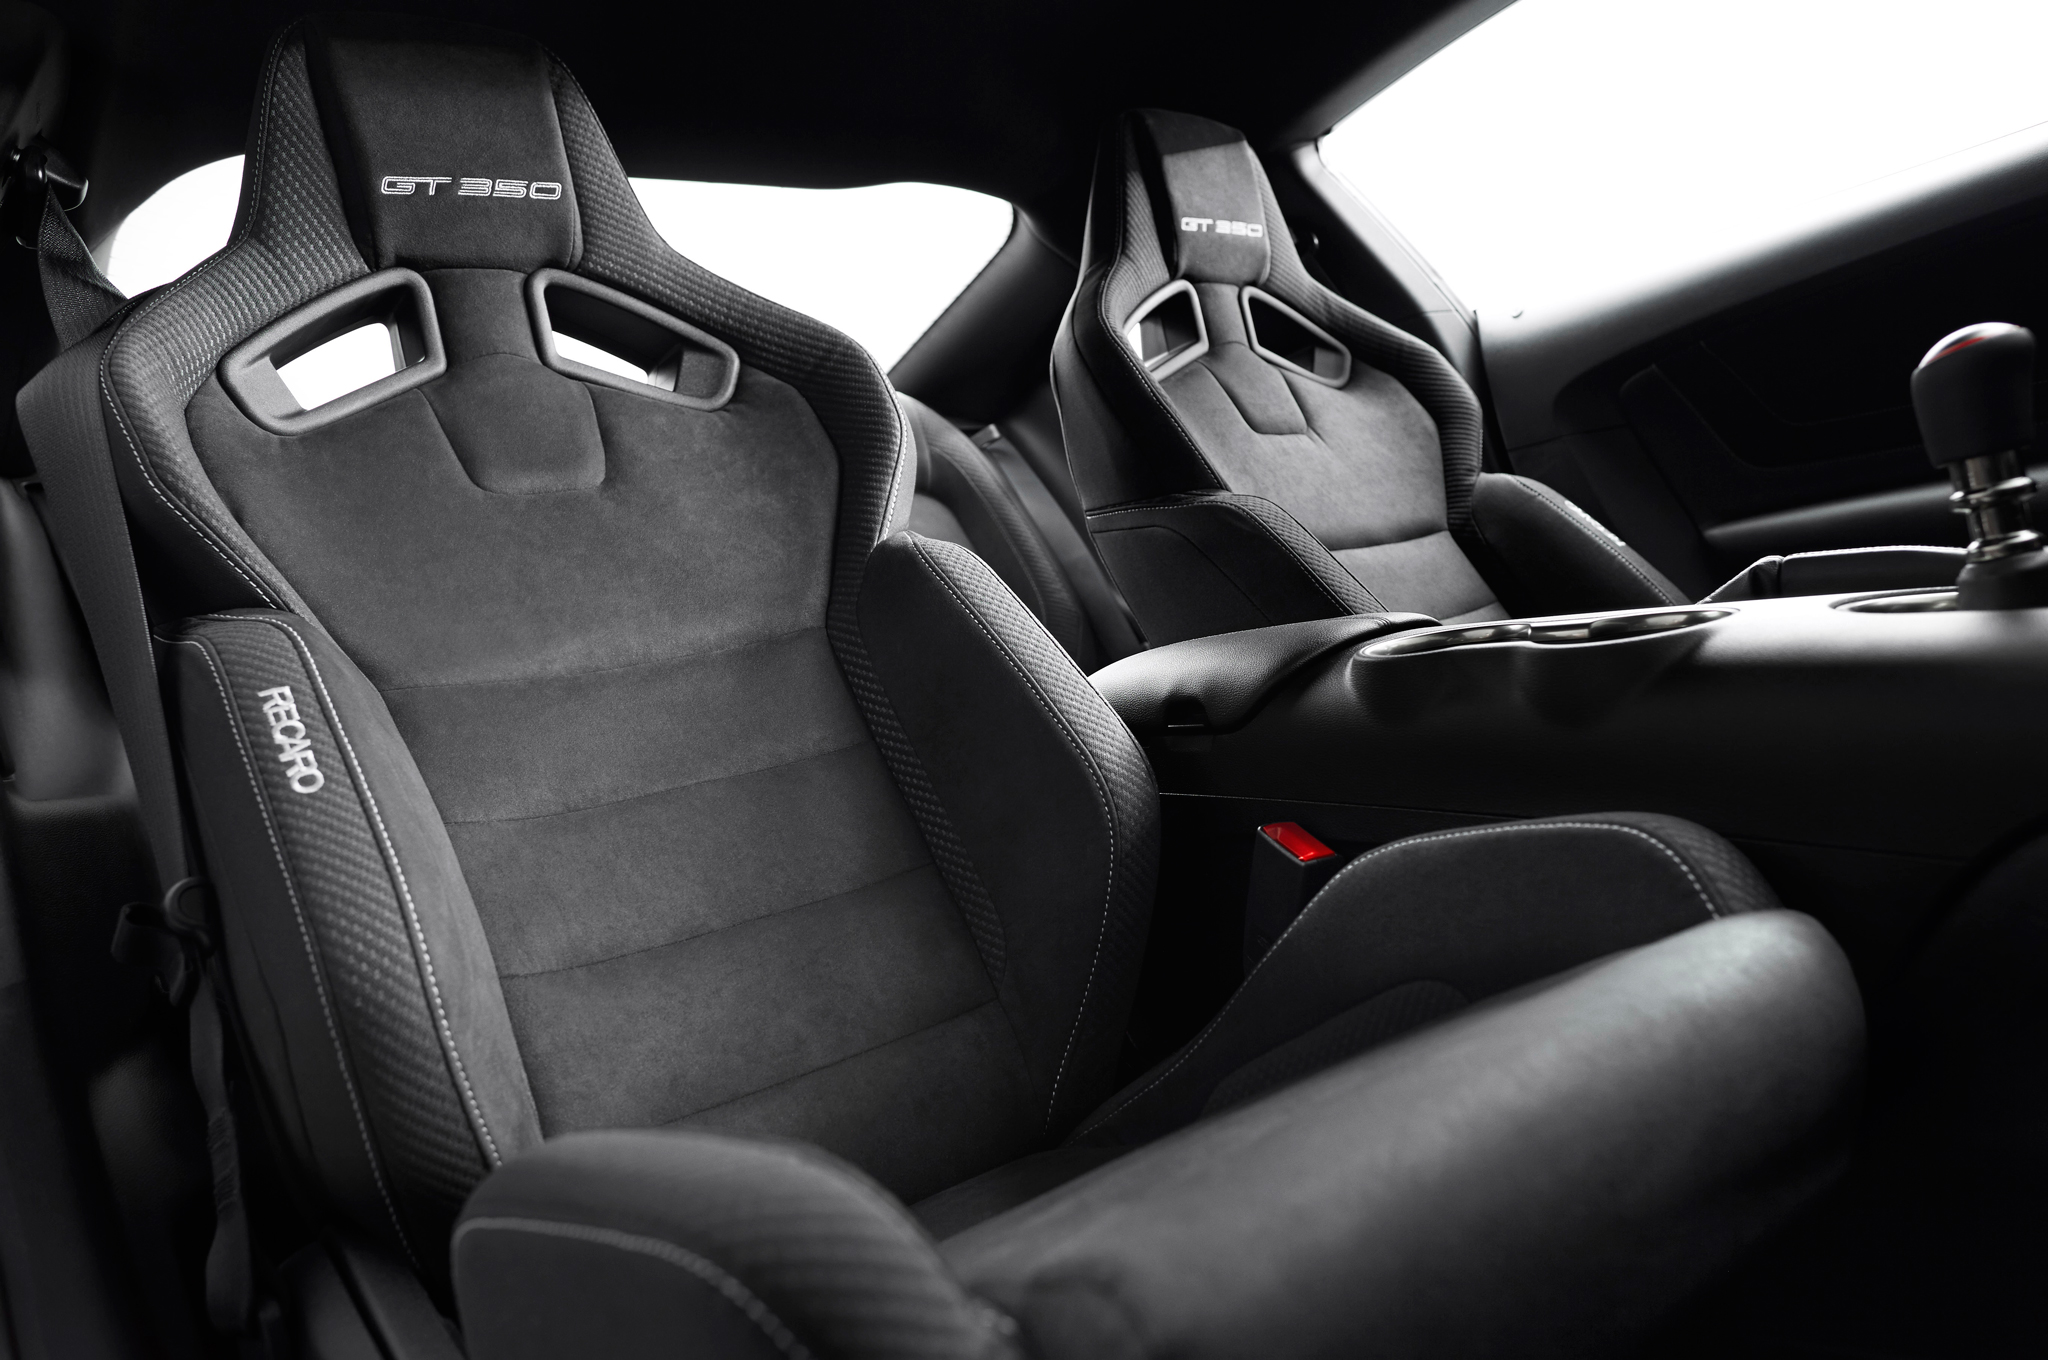 2016 Ford Shelby Gt350 Mustang Interior Seats (Photo 45 of 47)